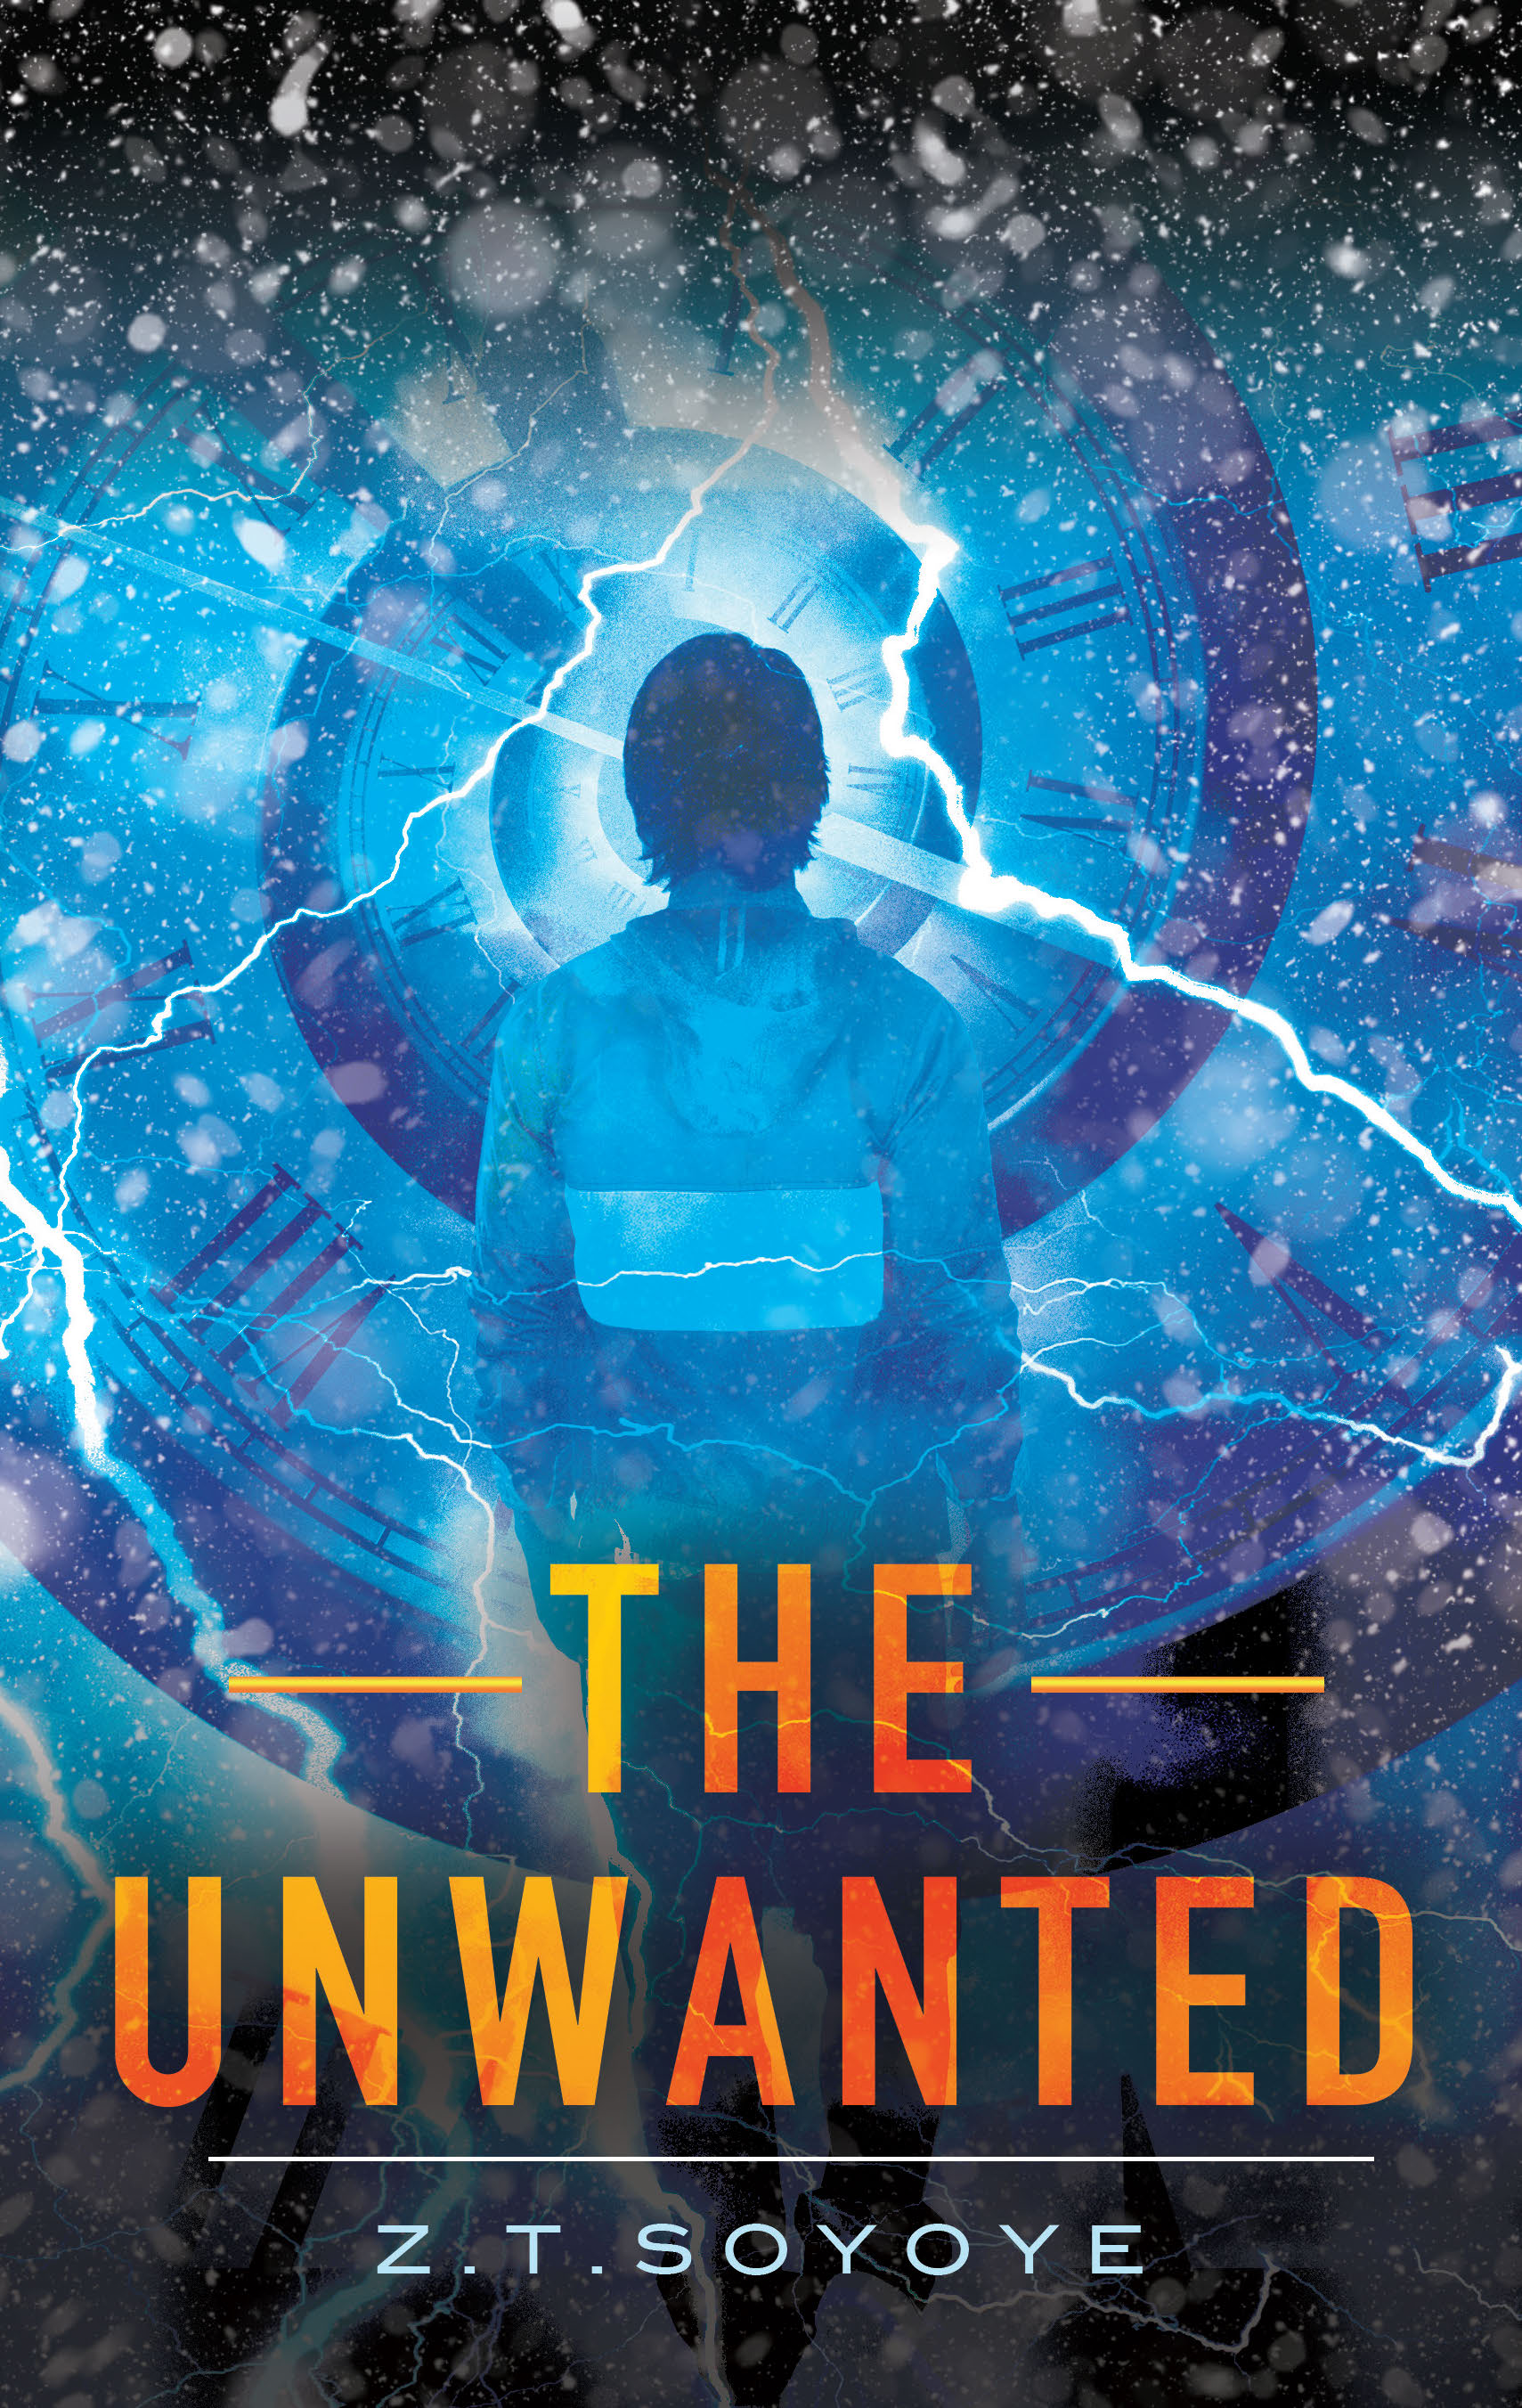 The Unwanted by ztsoyoye, a YA Fantasy Novel and Action-Adventure Mystery book